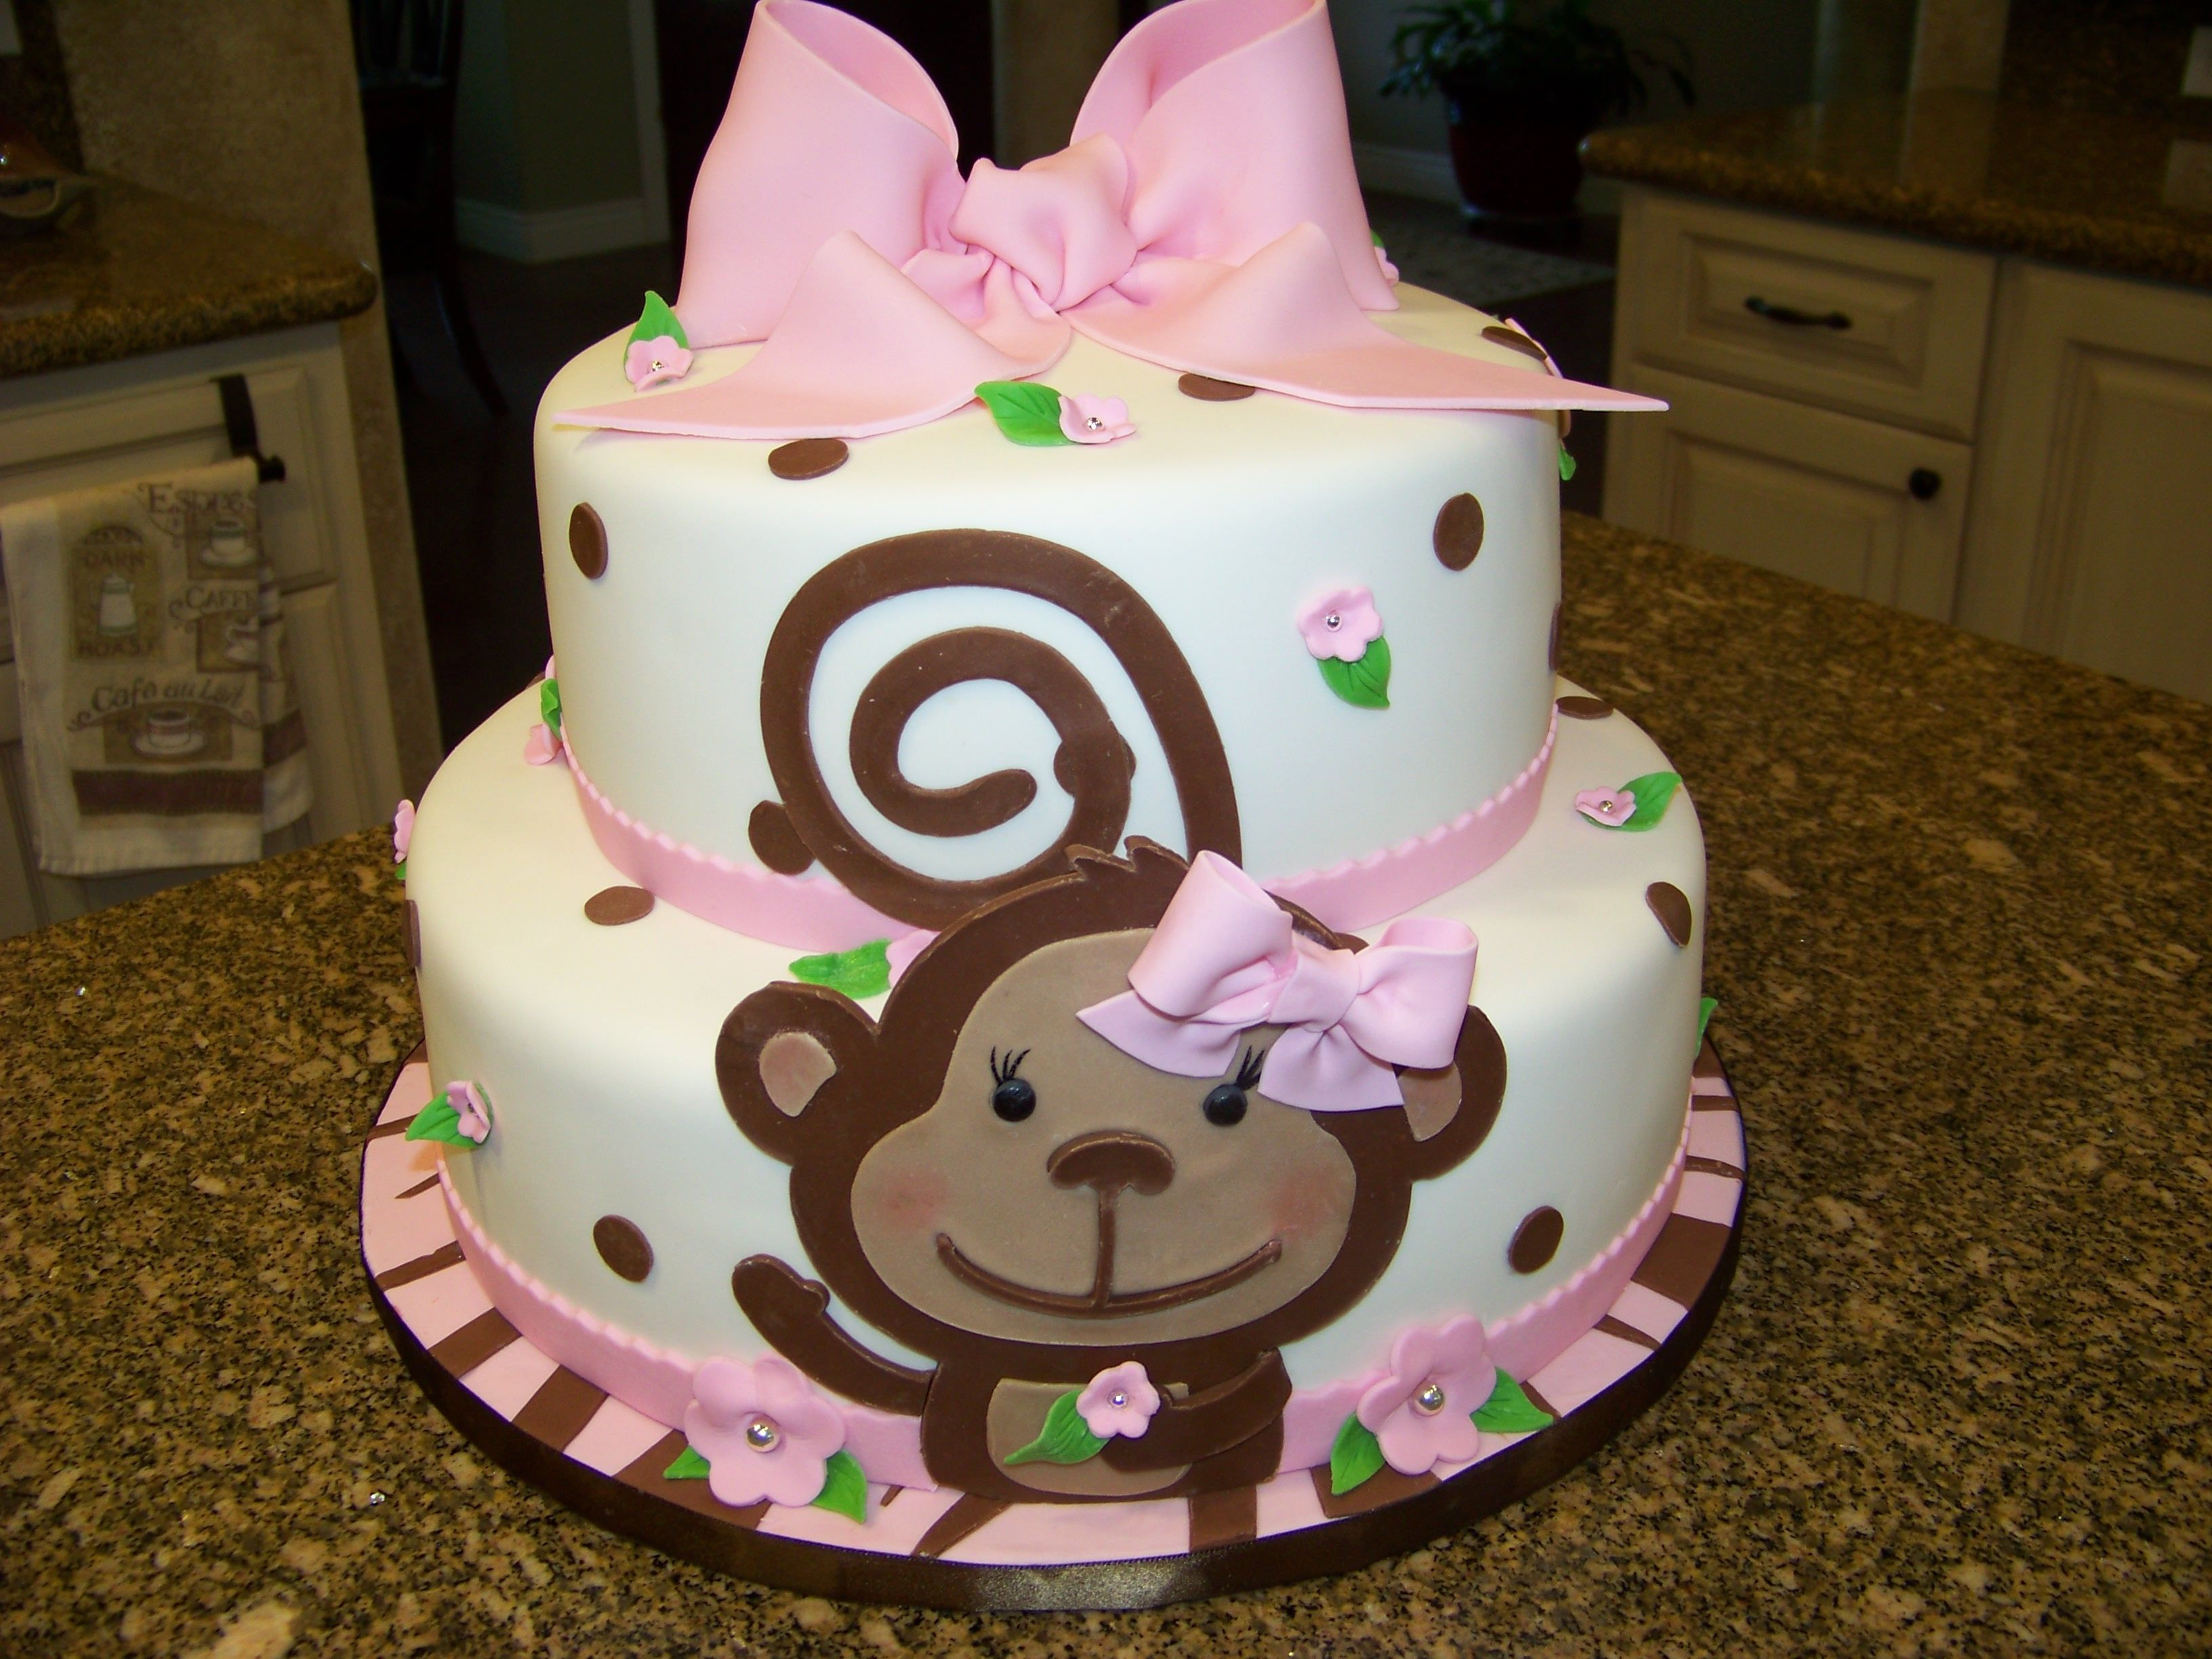 Monkey themed baby shower cake for a baby girl I was asked to make